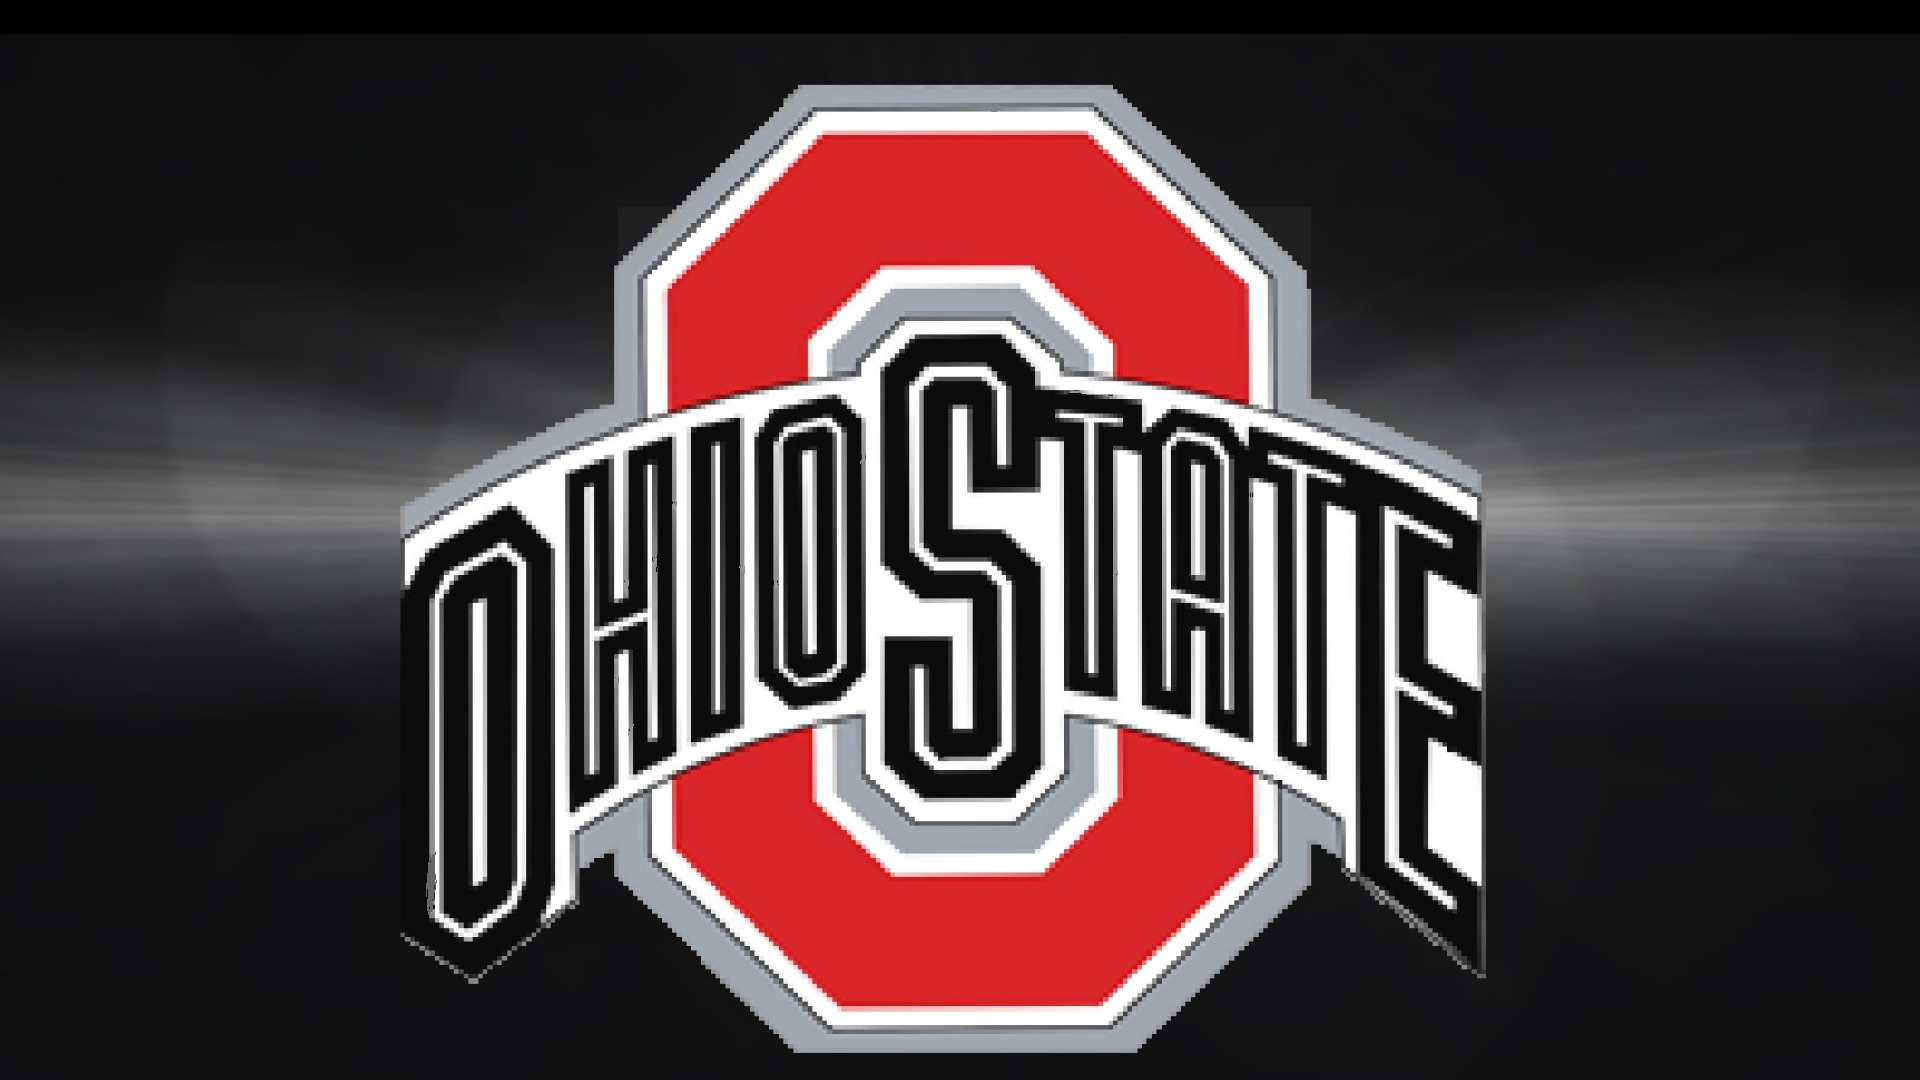 Ohio State Buckeyes Images RED BLOCK O ON GRAY BLACK HD Wallpaper And Background Photos